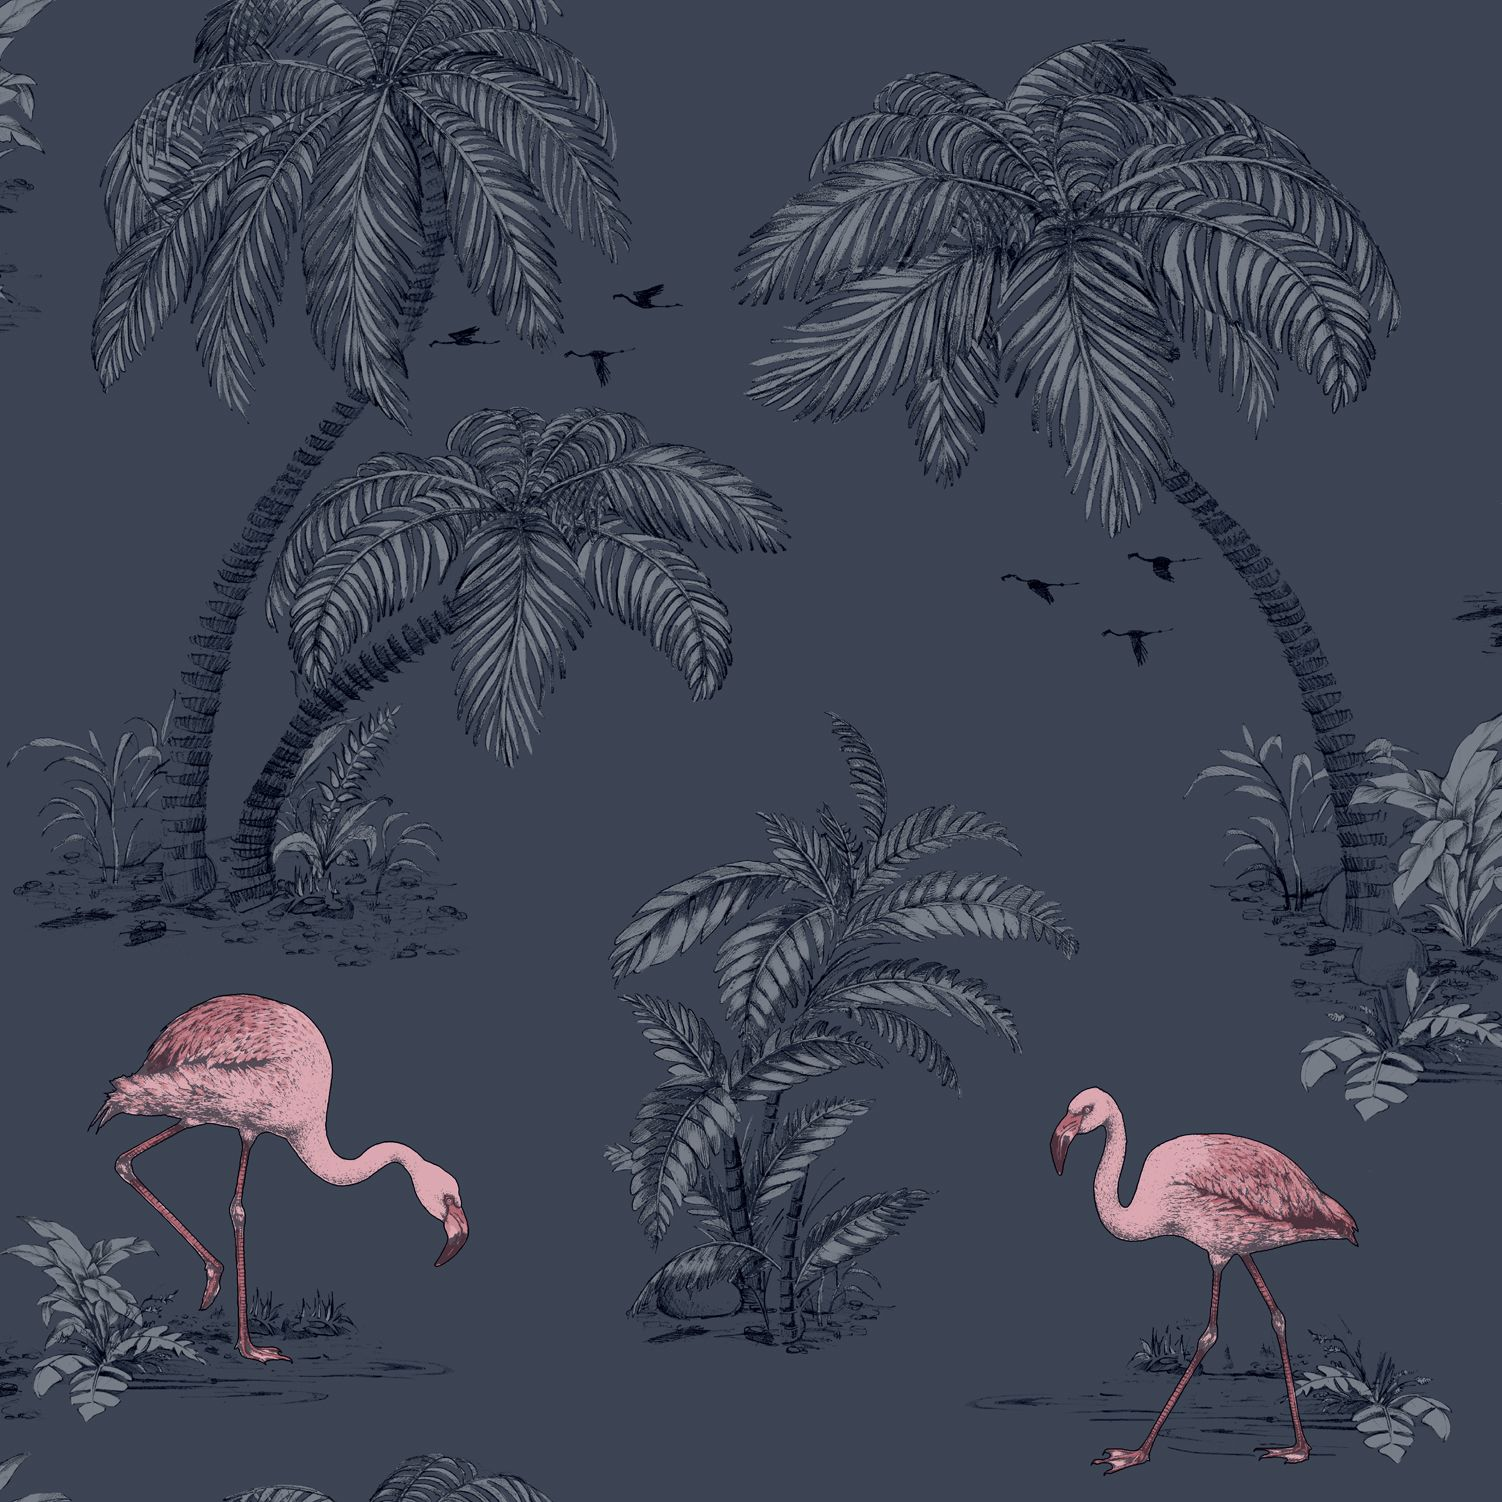 Tapetti Imaginarium 12382 Flamingo Midnight Blue Pink 0,53x10,05 m monivärinen paperitapetti